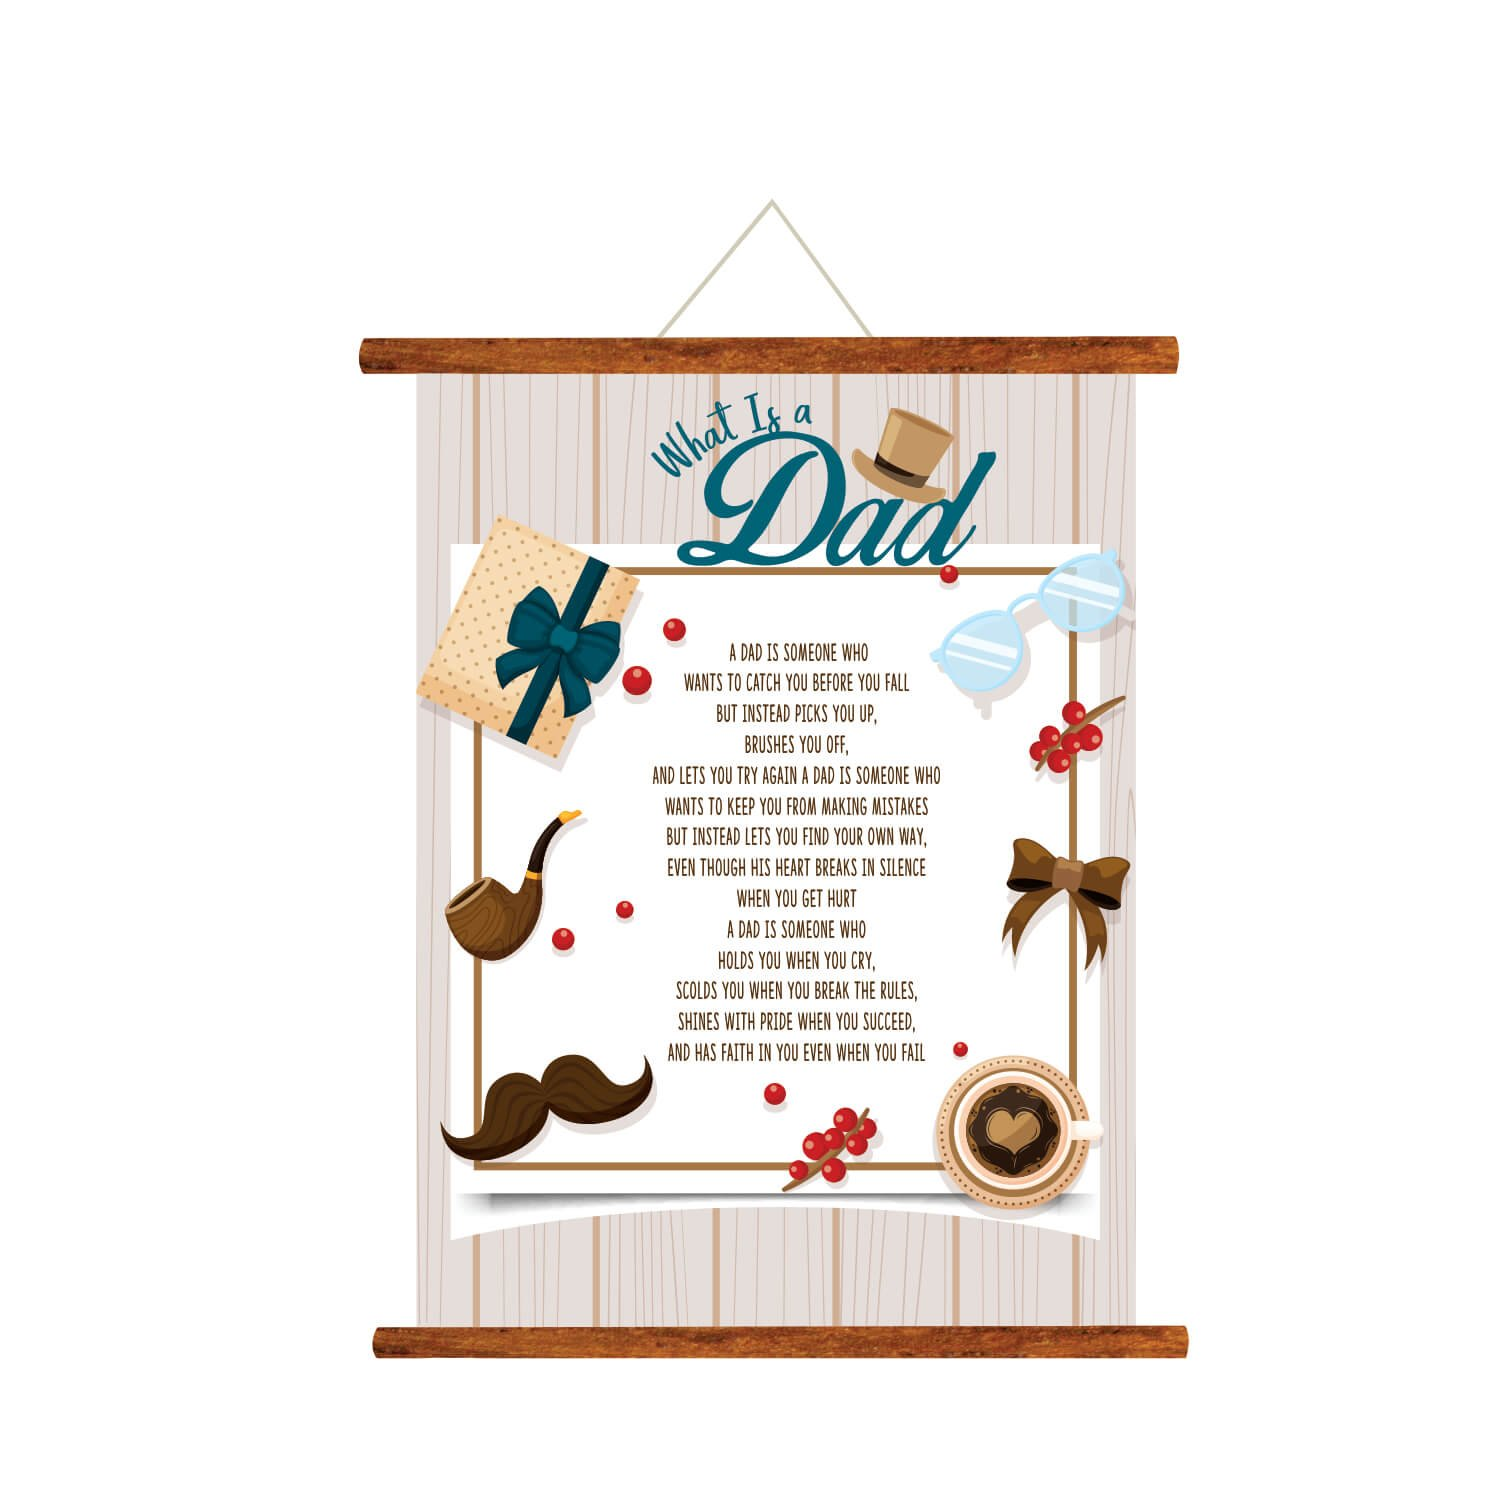 YaYa Cafe Fathers Day Greeting Cards Thanks For Your Faith Dad Message Scroll Card Wall Hanging Decor